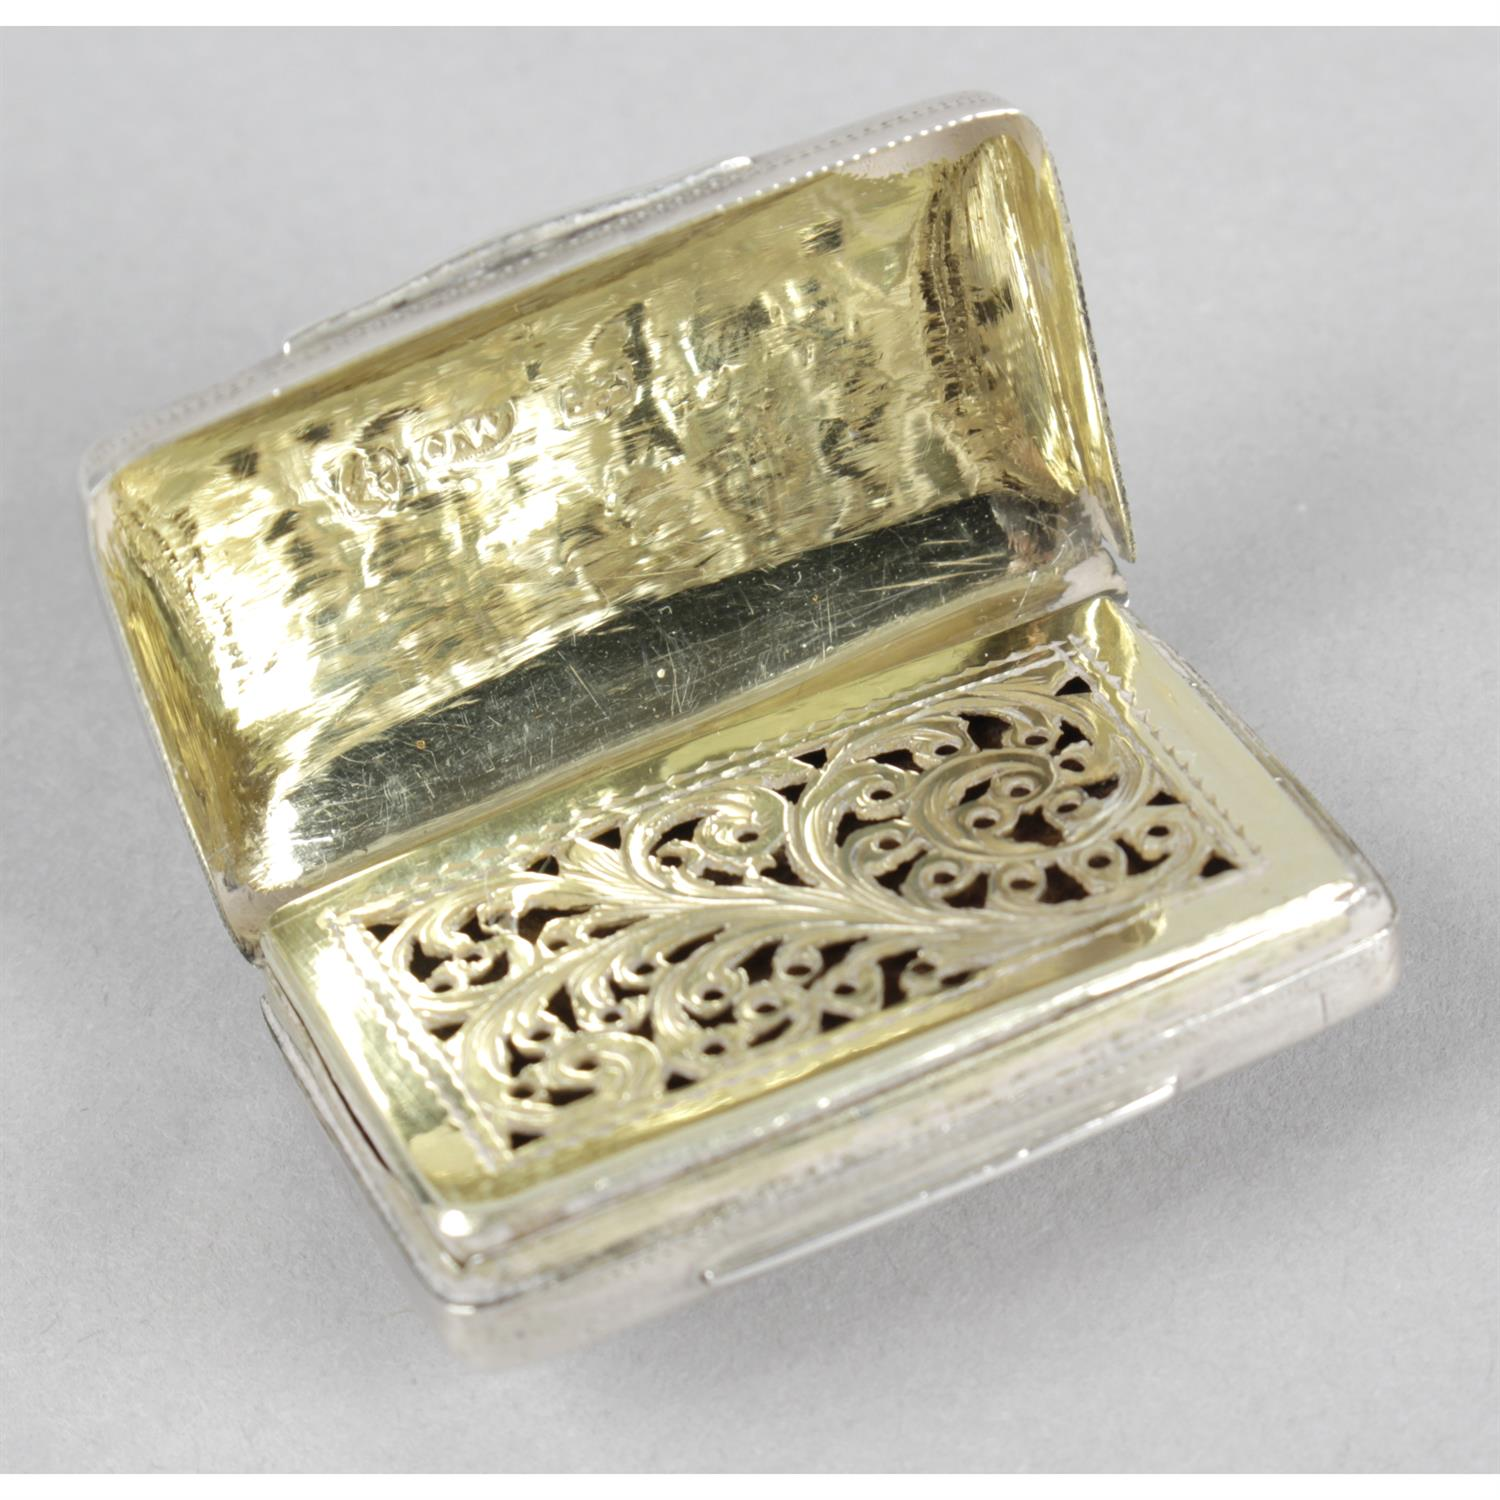 A George IV silver vinaigrette by Joseph Willmore. - Image 3 of 4